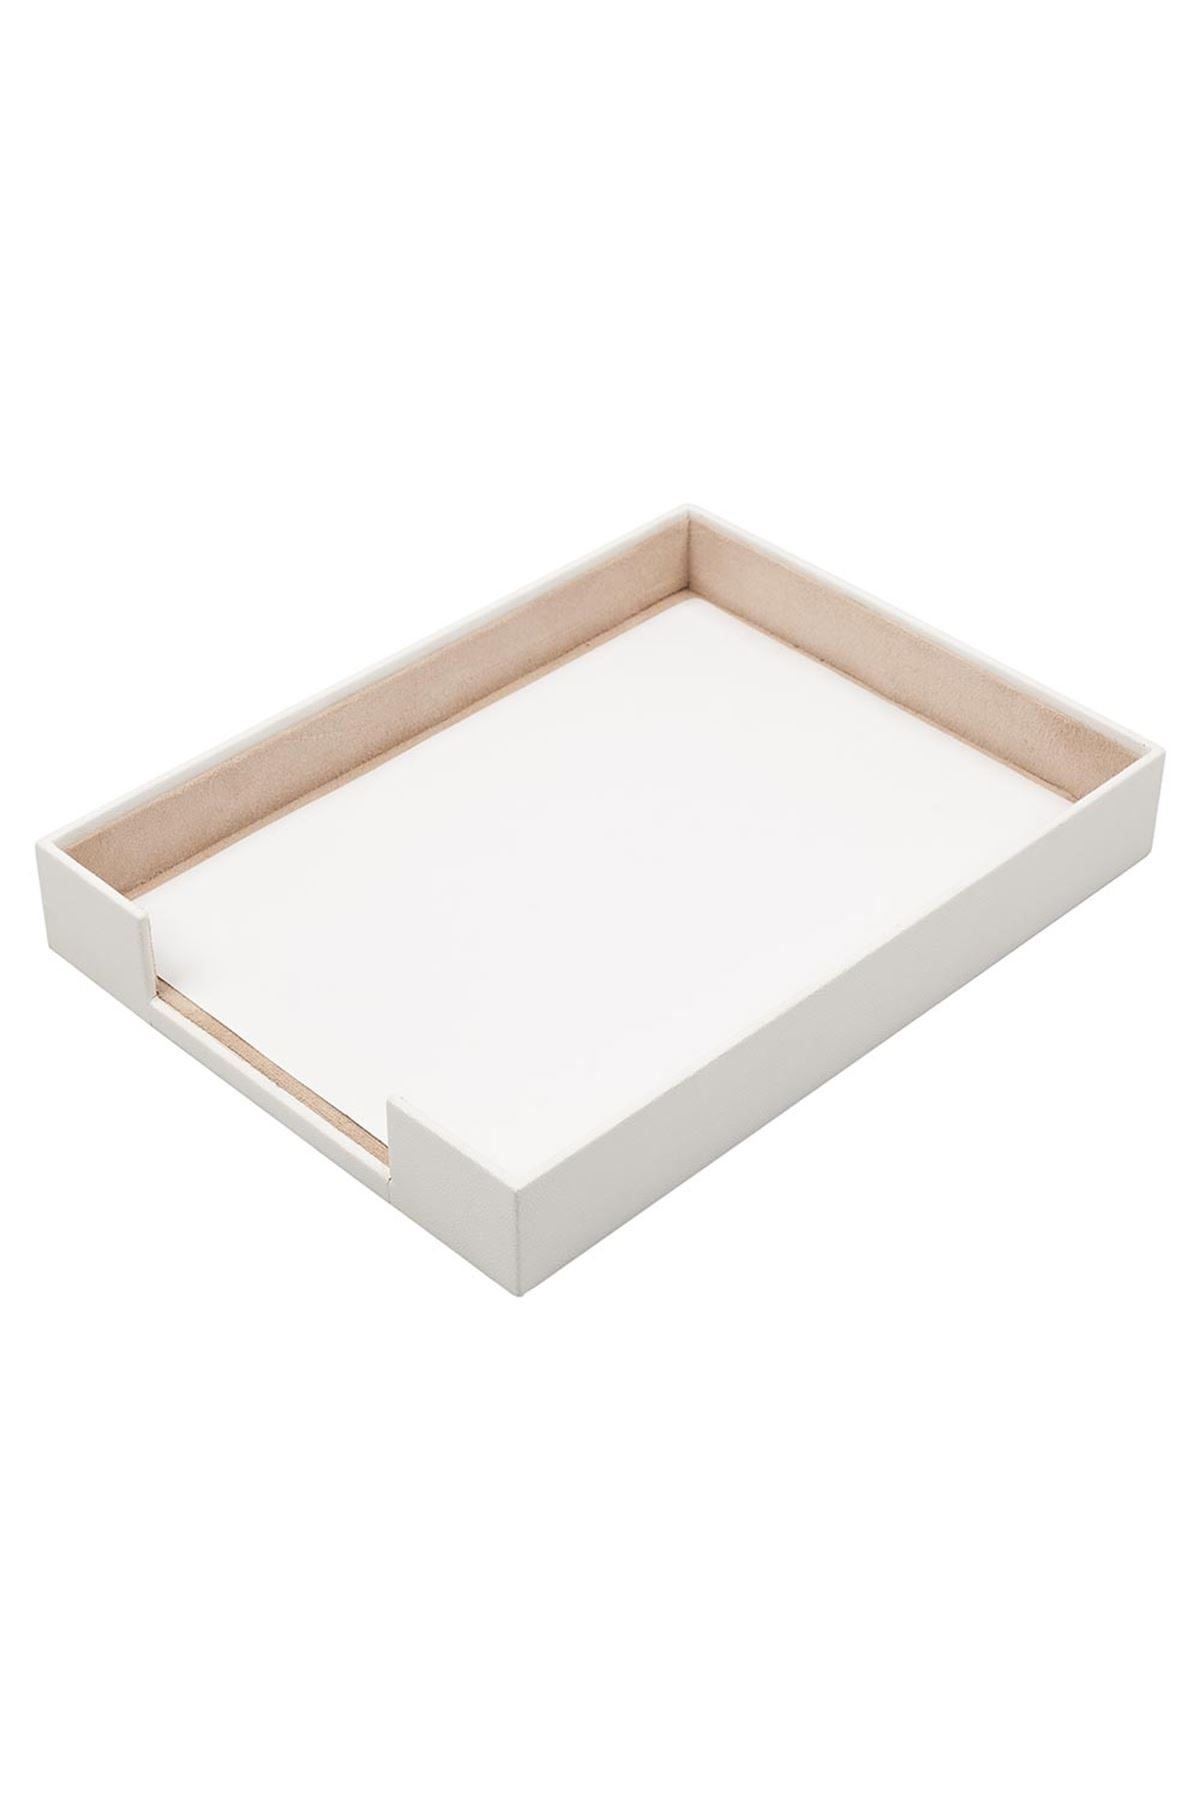 Document Tray White| Leather Document Organizer | Leather Tray | Leather Organizer | Document Shelf